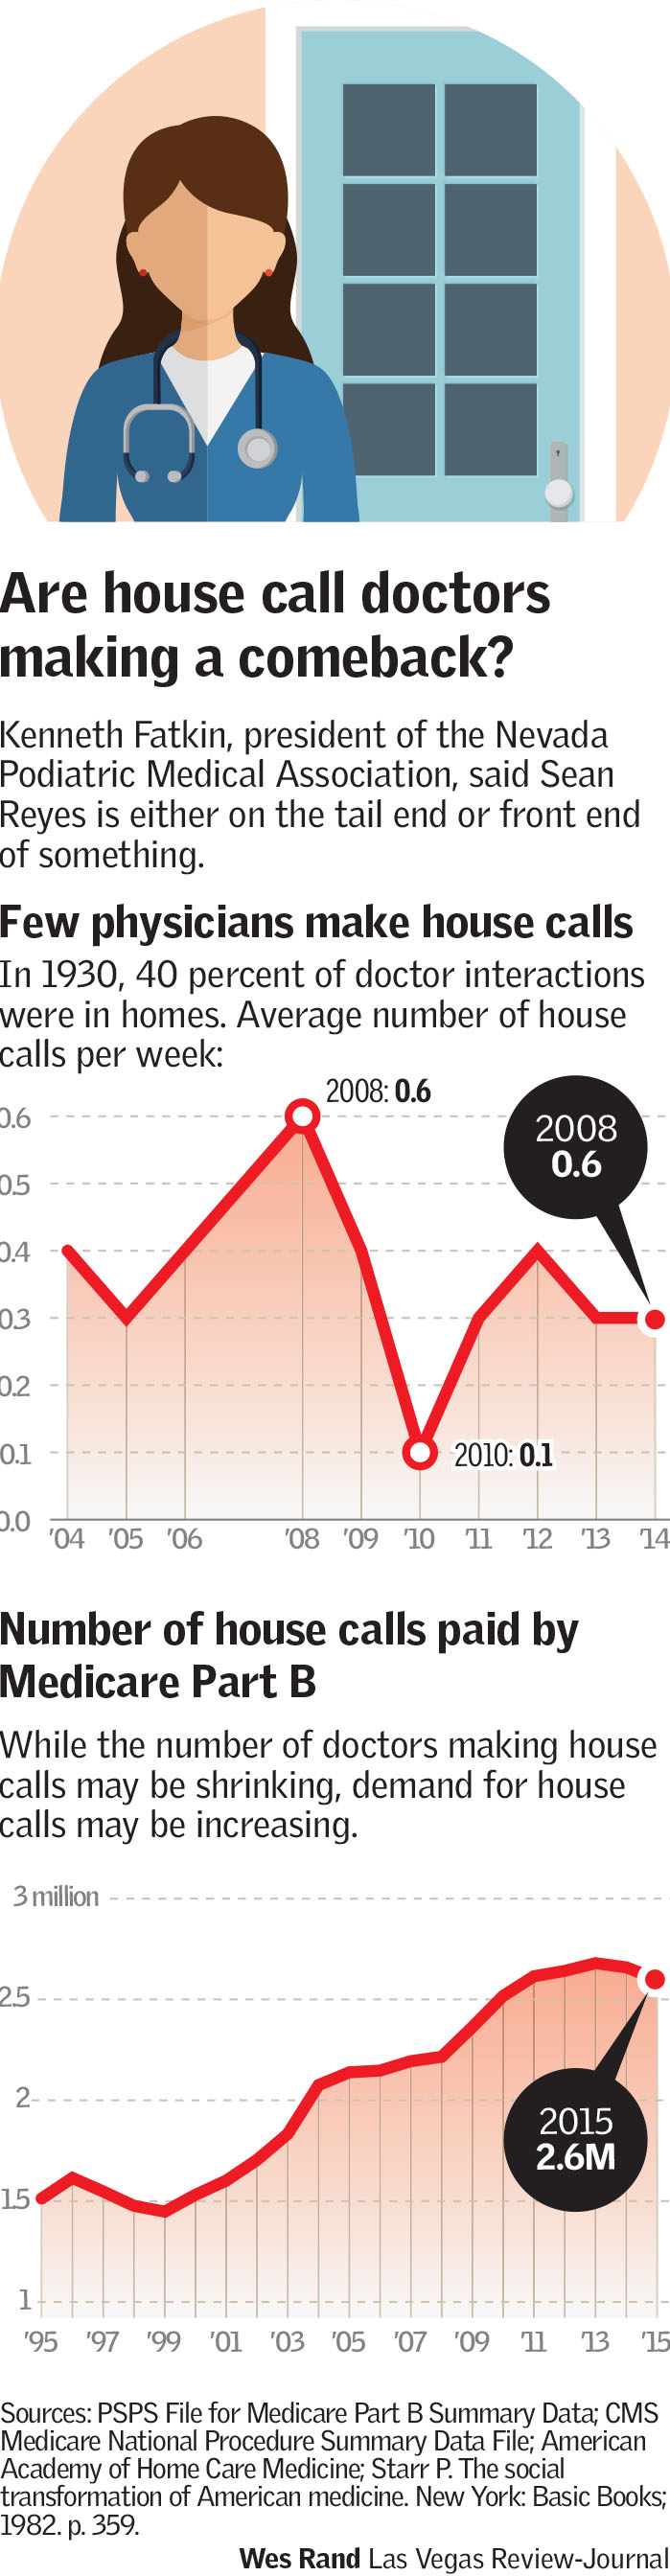 Are House Call Doctors Making A Comeback?